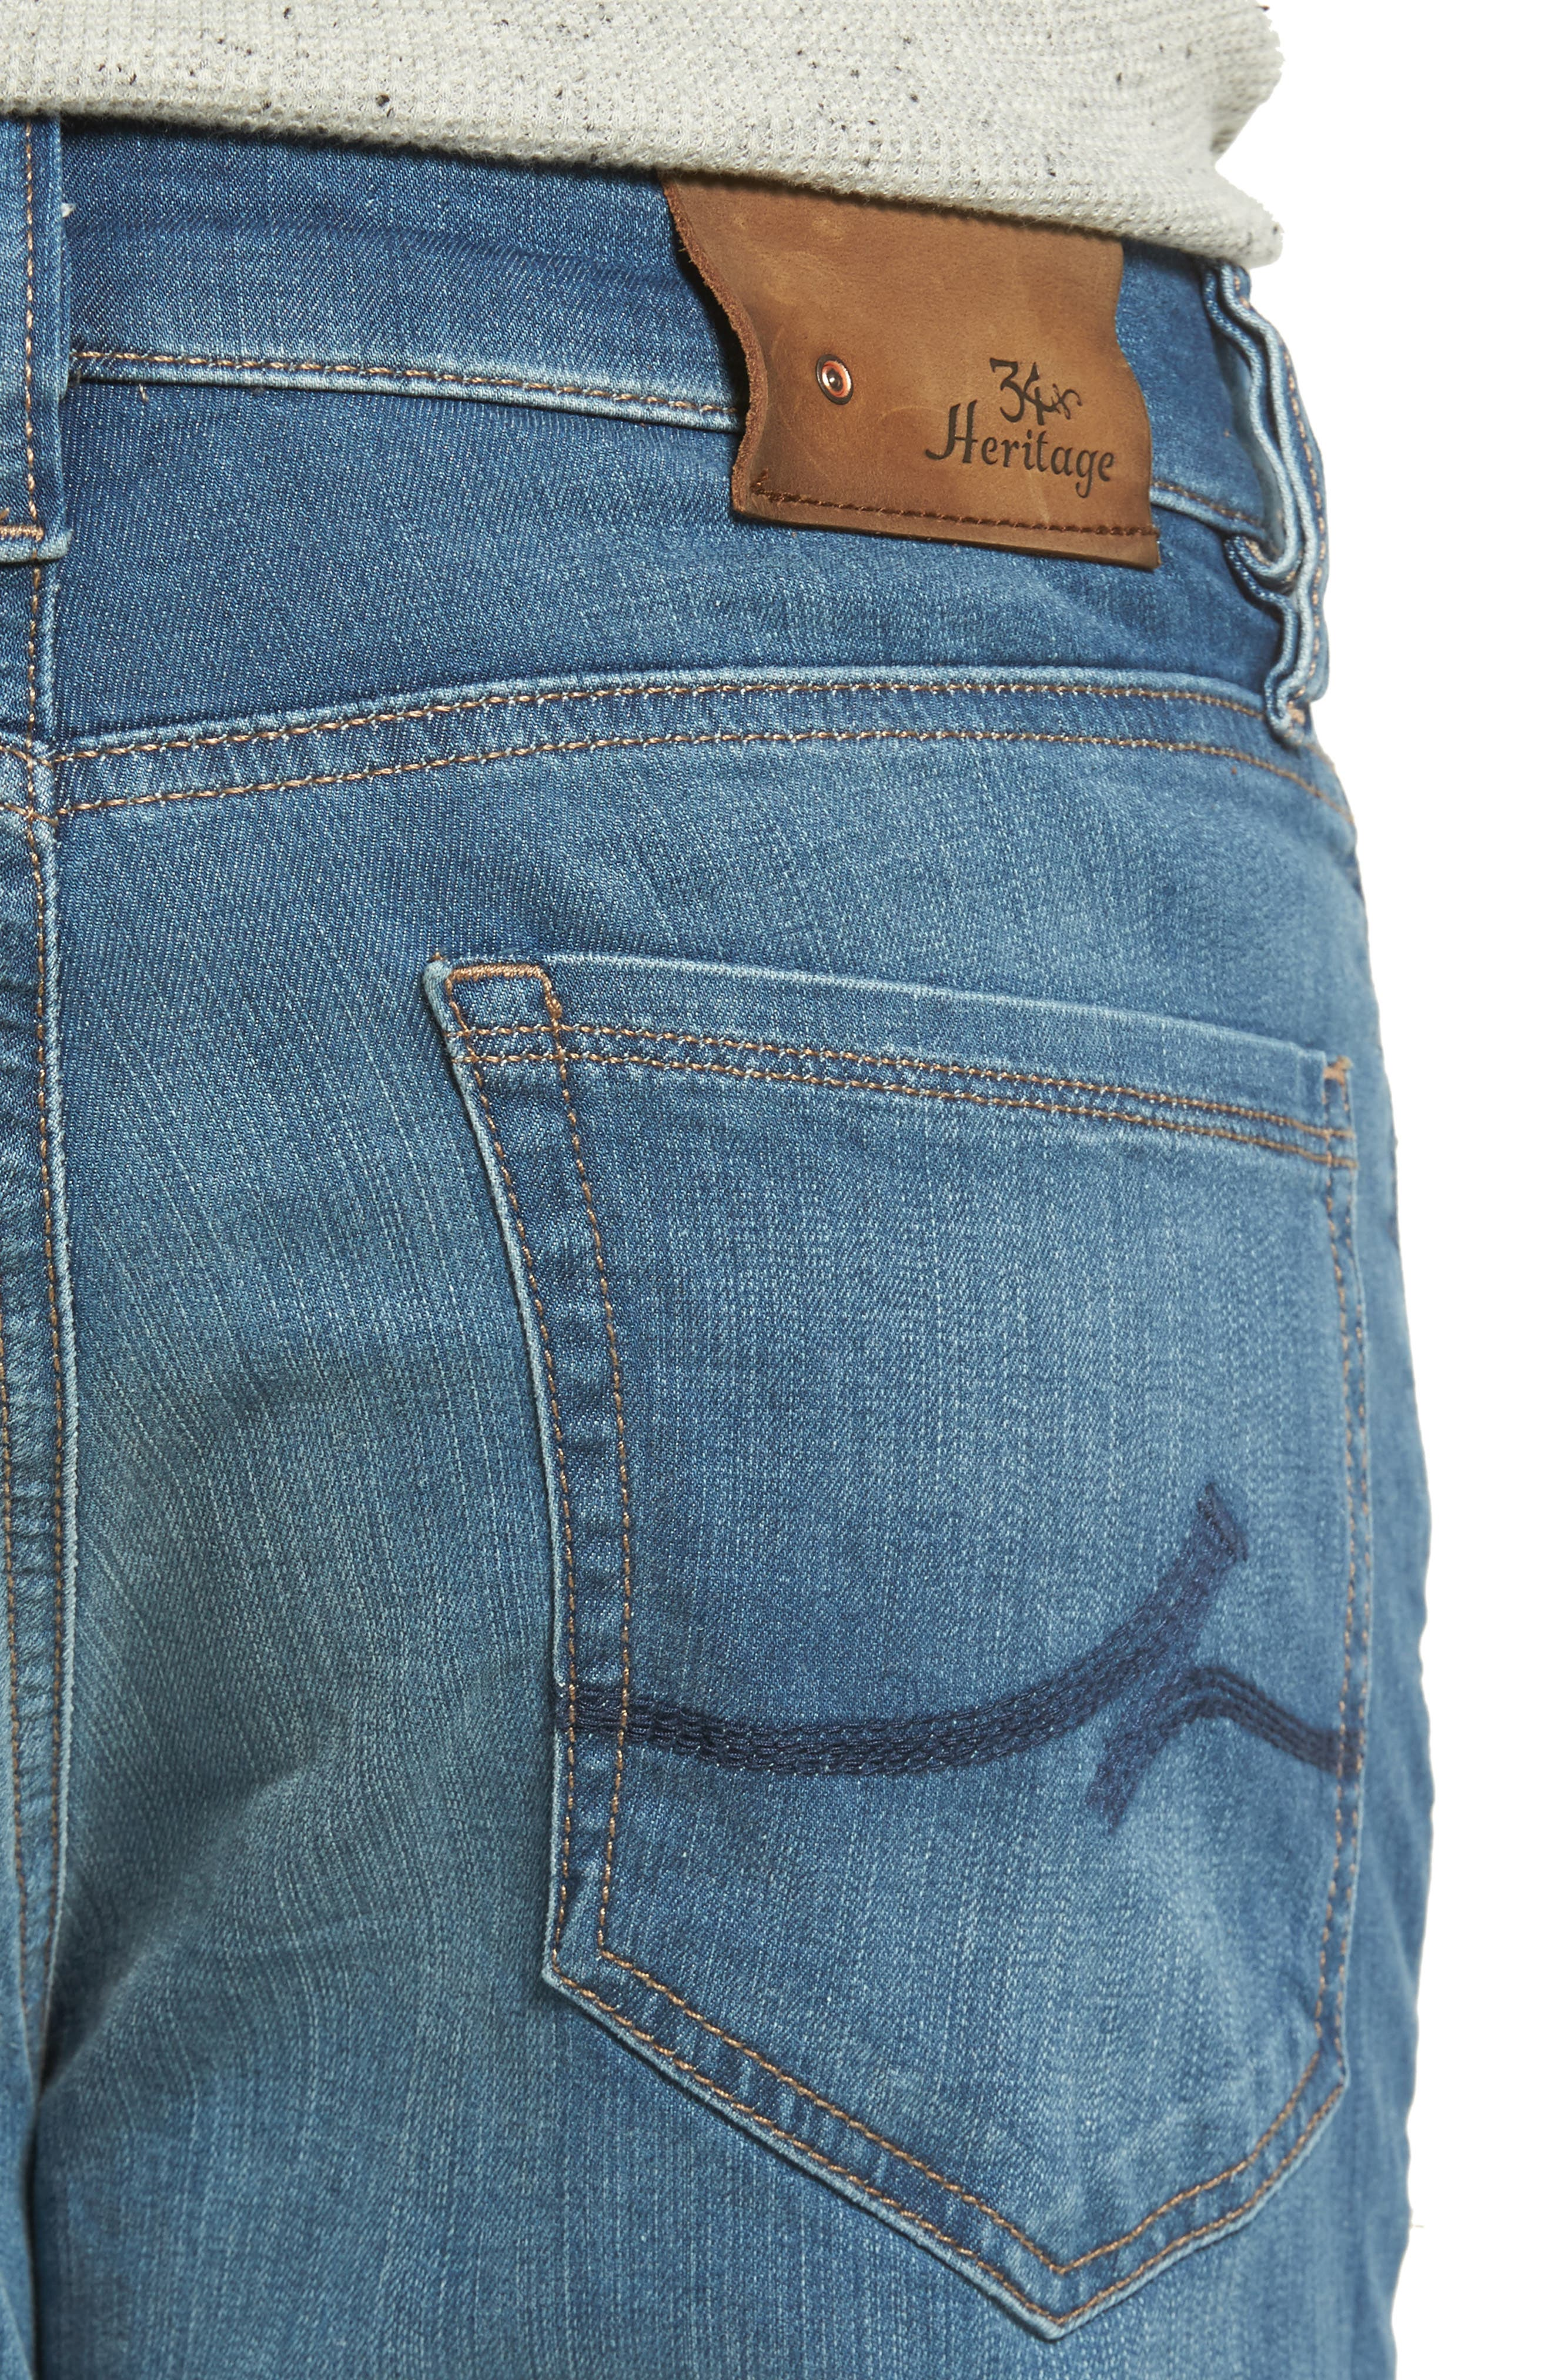 Alternate Image 4  - 34 Heritage 'Charisma' Classic Relaxed Fit Jeans (Mid Cashmere) (Online Only) (Regular & Tall)